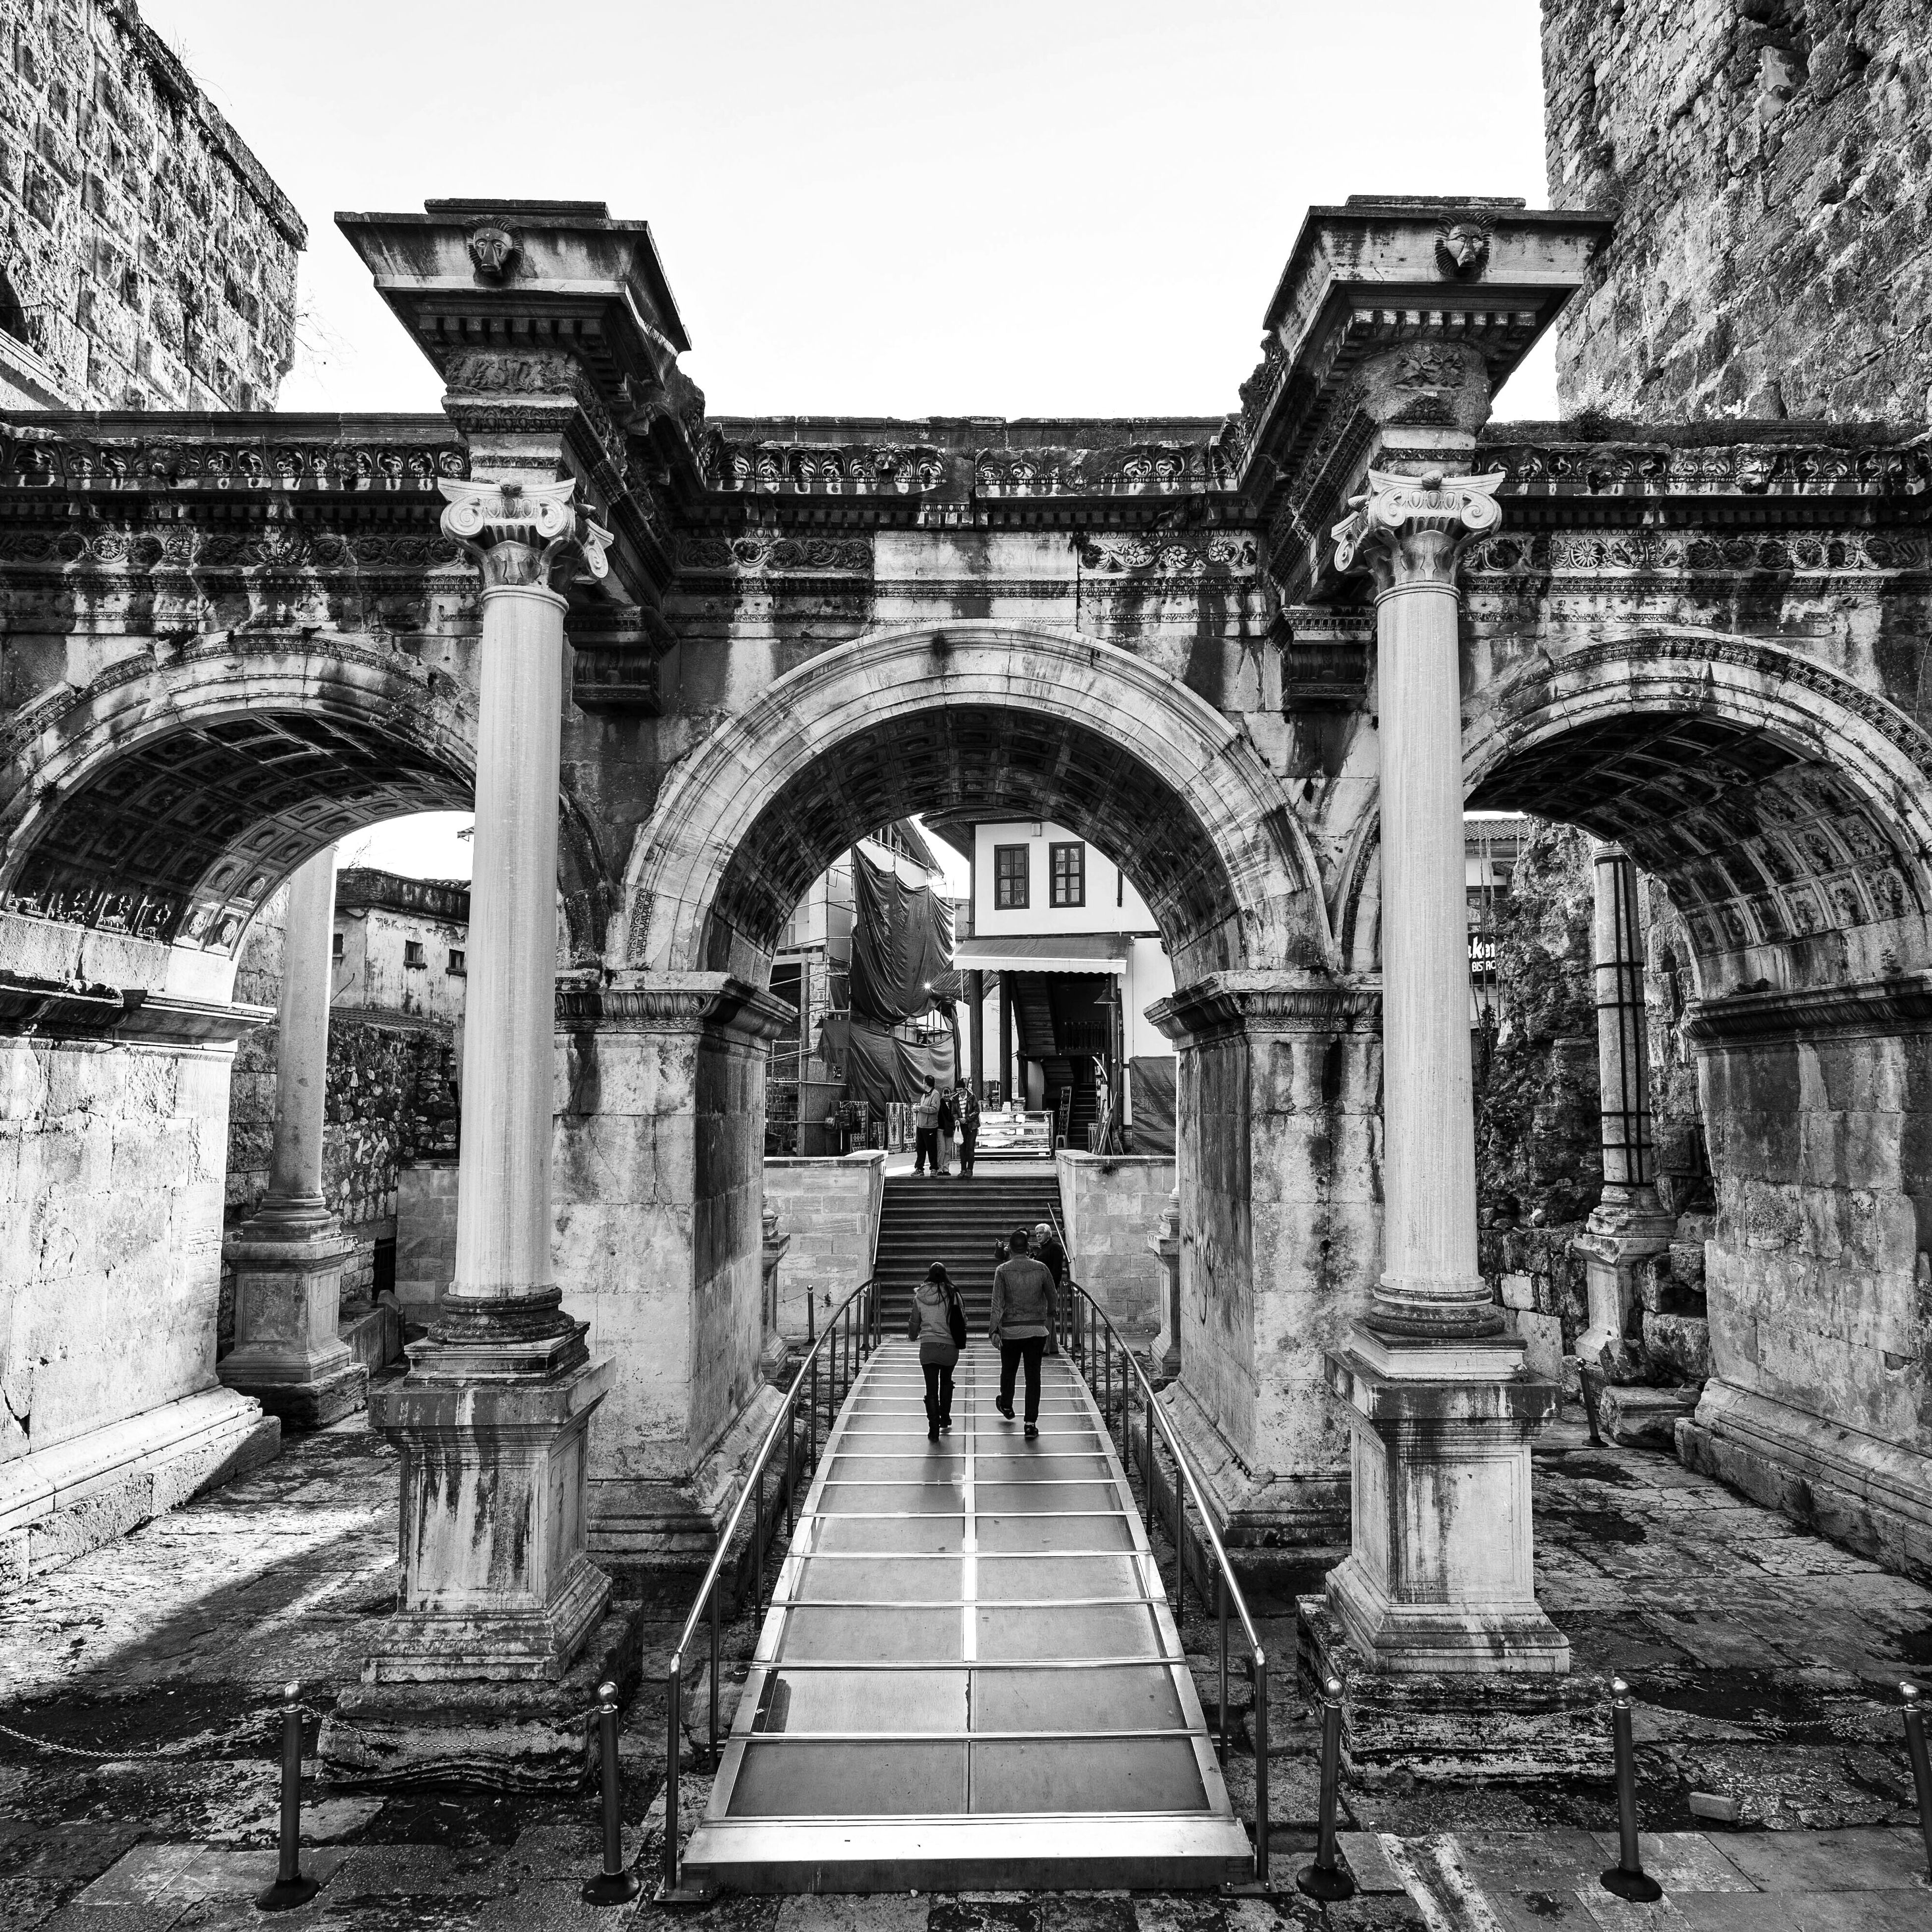 architecture, built structure, arch, building exterior, steps, entrance, railing, architectural column, history, low angle view, religion, clear sky, day, place of worship, archway, gate, the way forward, outdoors, steps and staircases, old